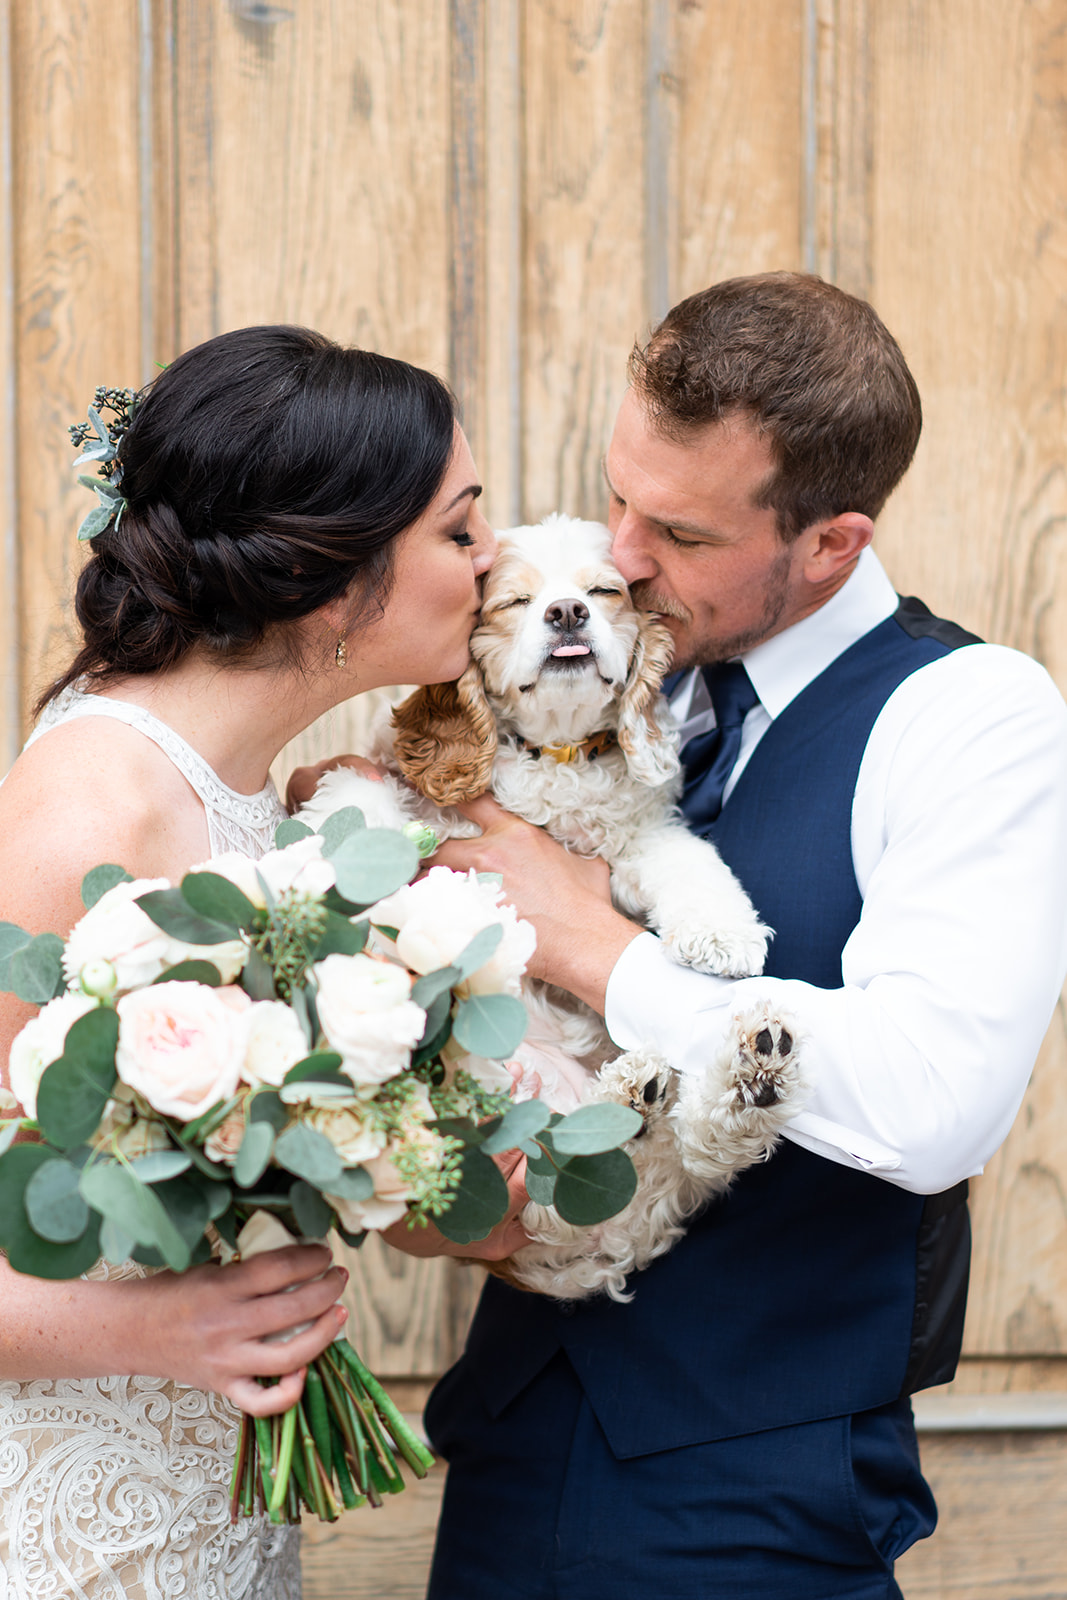 Austin Wedding Photographer | Intimate Austin Wedding Photos | Chapel Dulcinea Wedding | Austin Wedding Venue | Austin Elopement | Caitlin Rose Photography | Dogs in Weddings